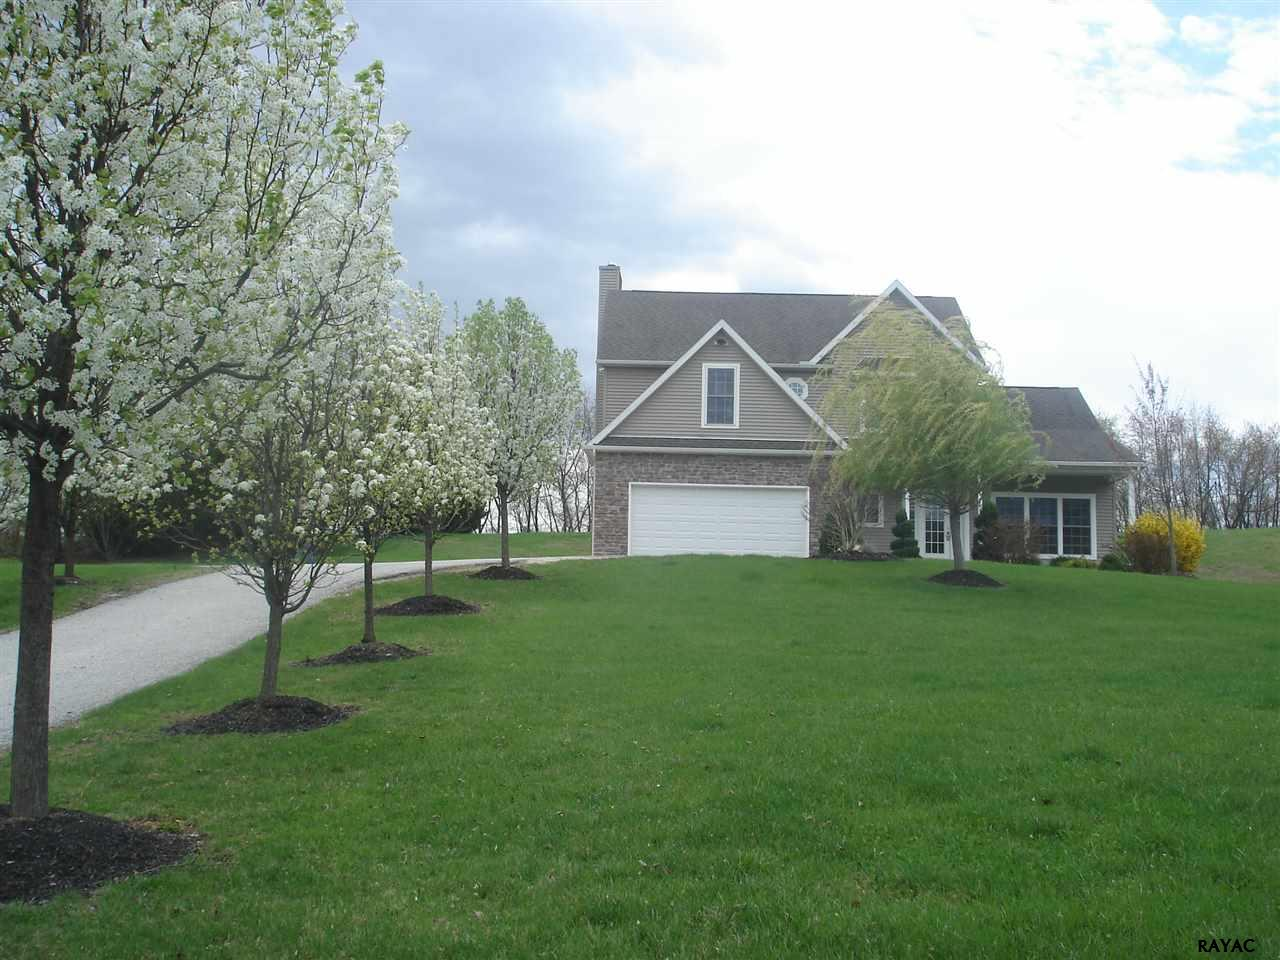 7416 Pigeon Hill Rd, Spring Grove, PA 17362